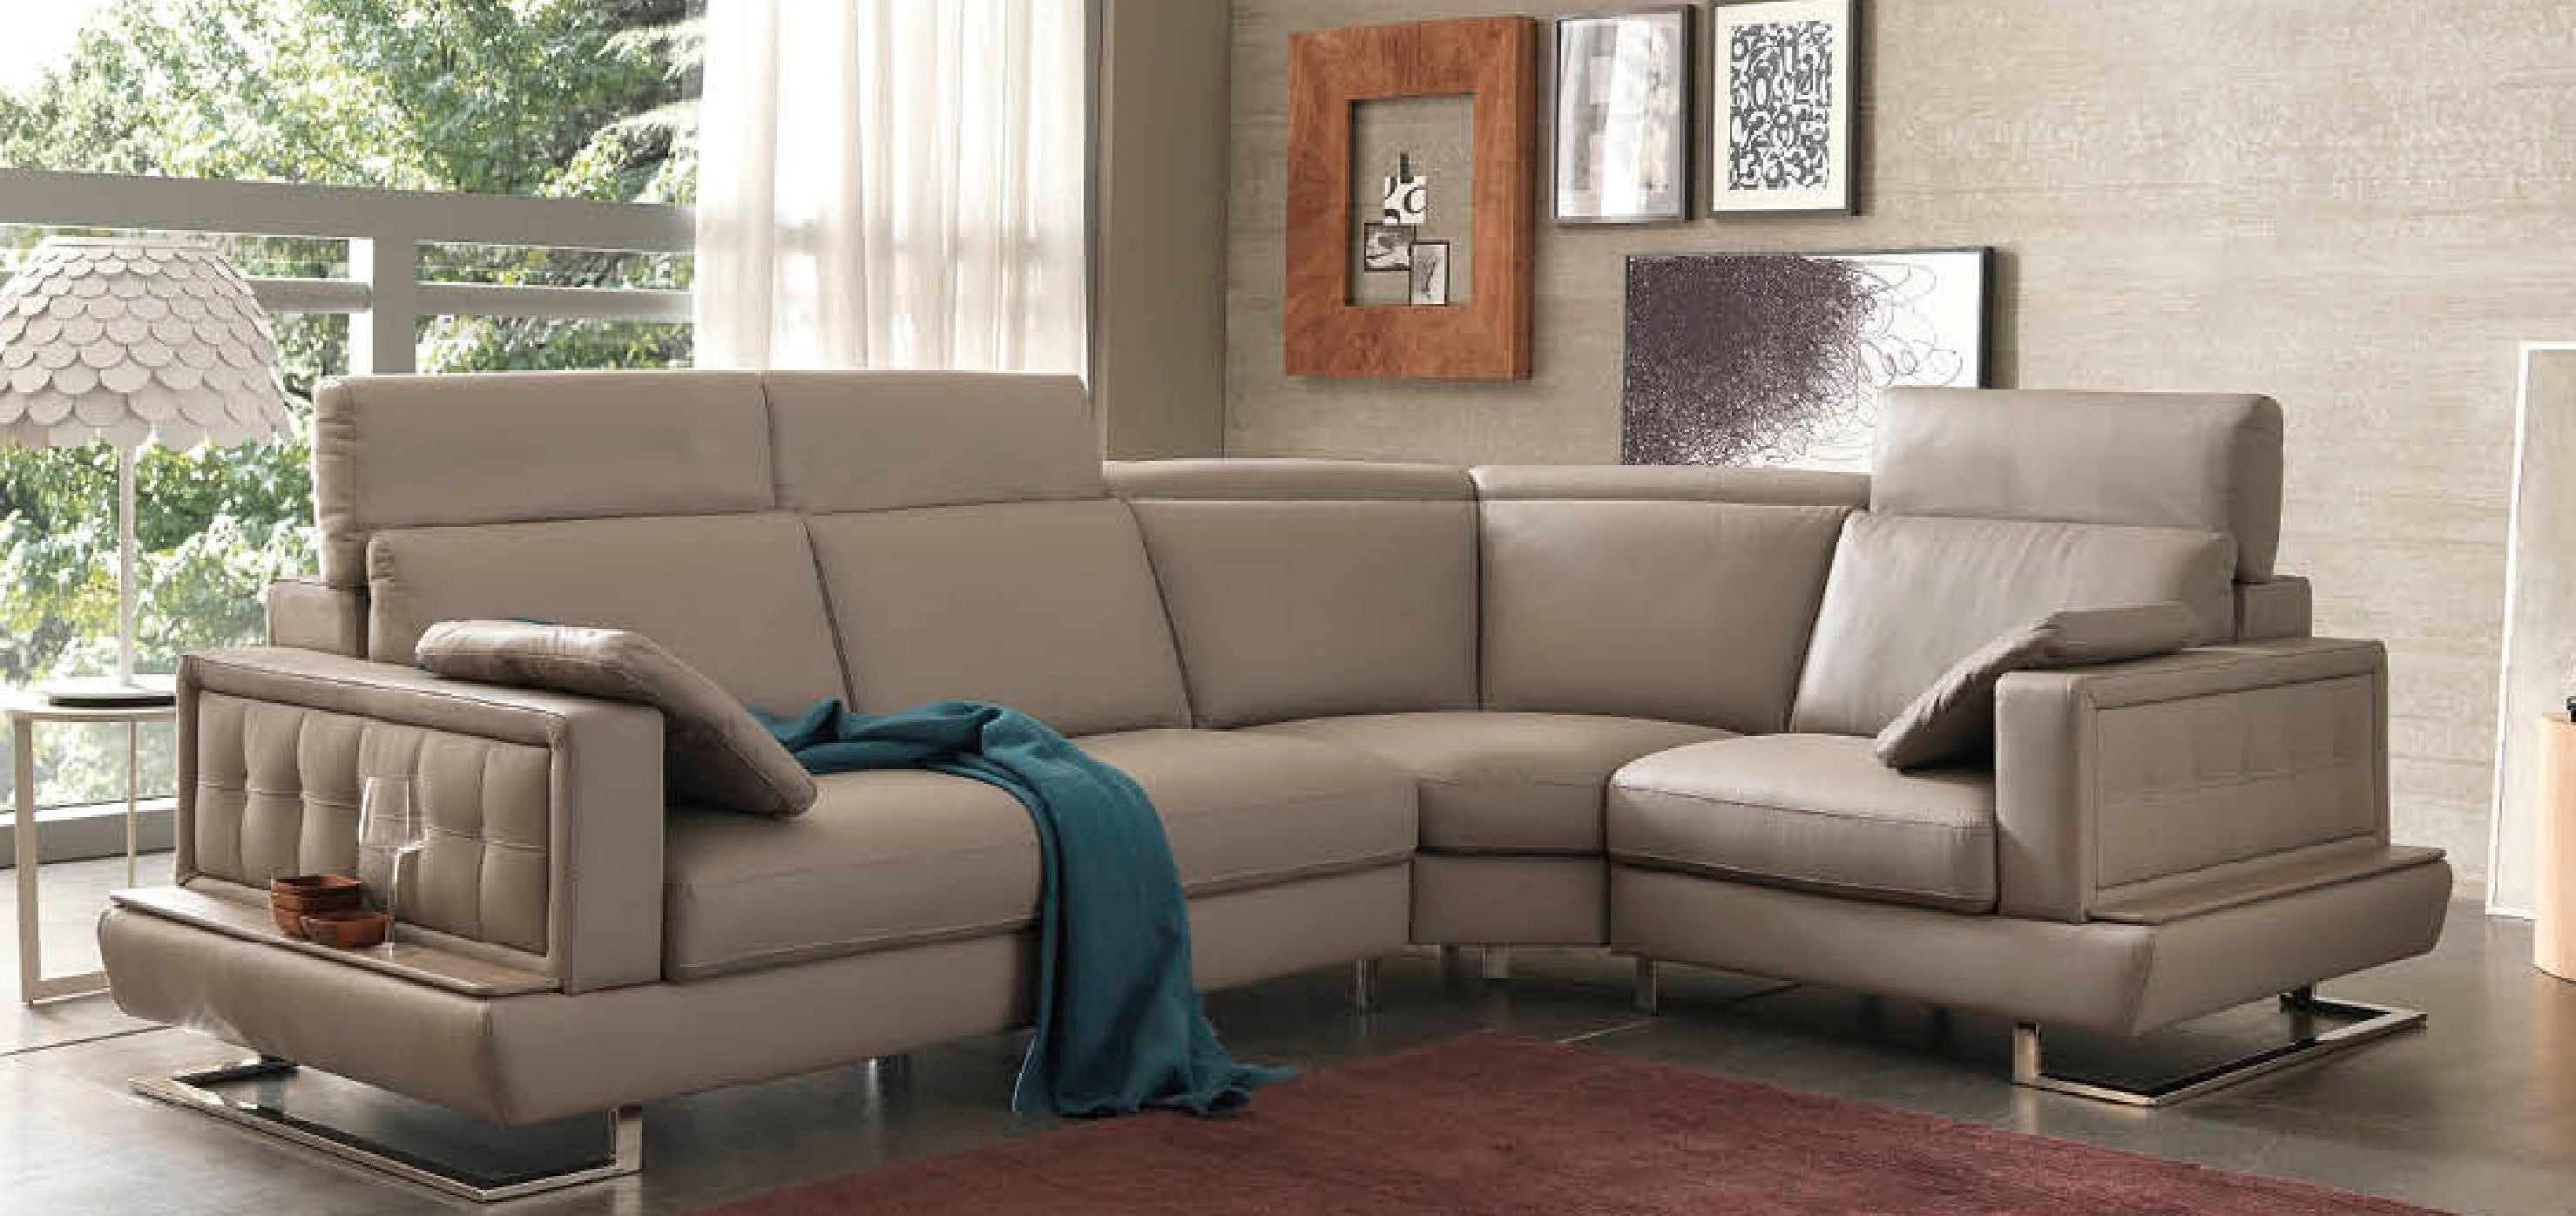 Luxury Leather Furniture in Rossington